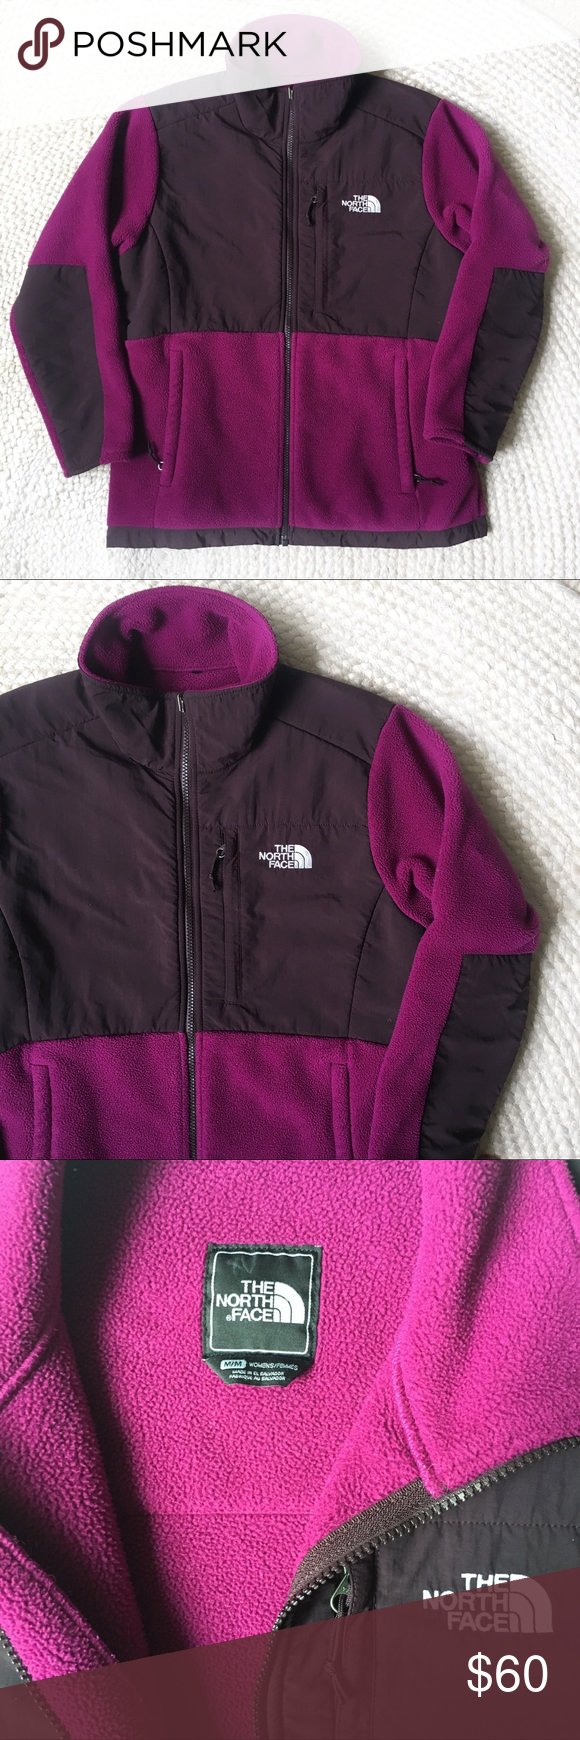 The north face denali fleece jacket berry euc berry flaws and